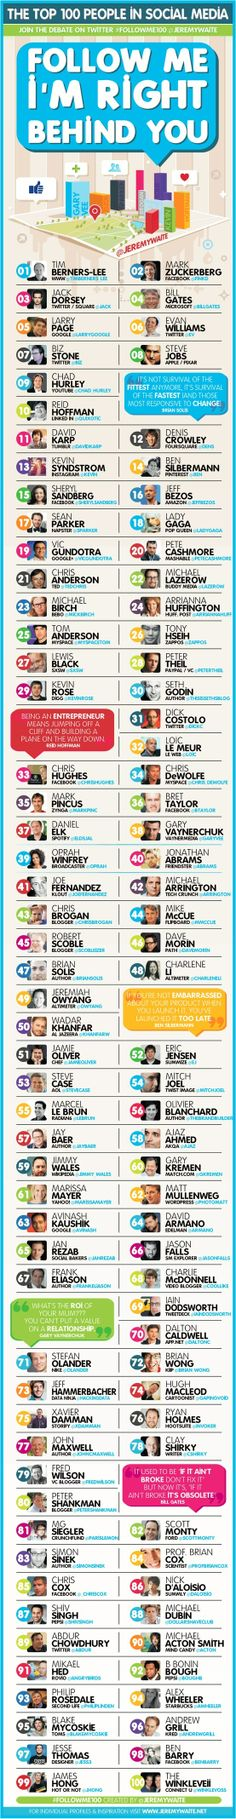 The top-100 people in Social Media